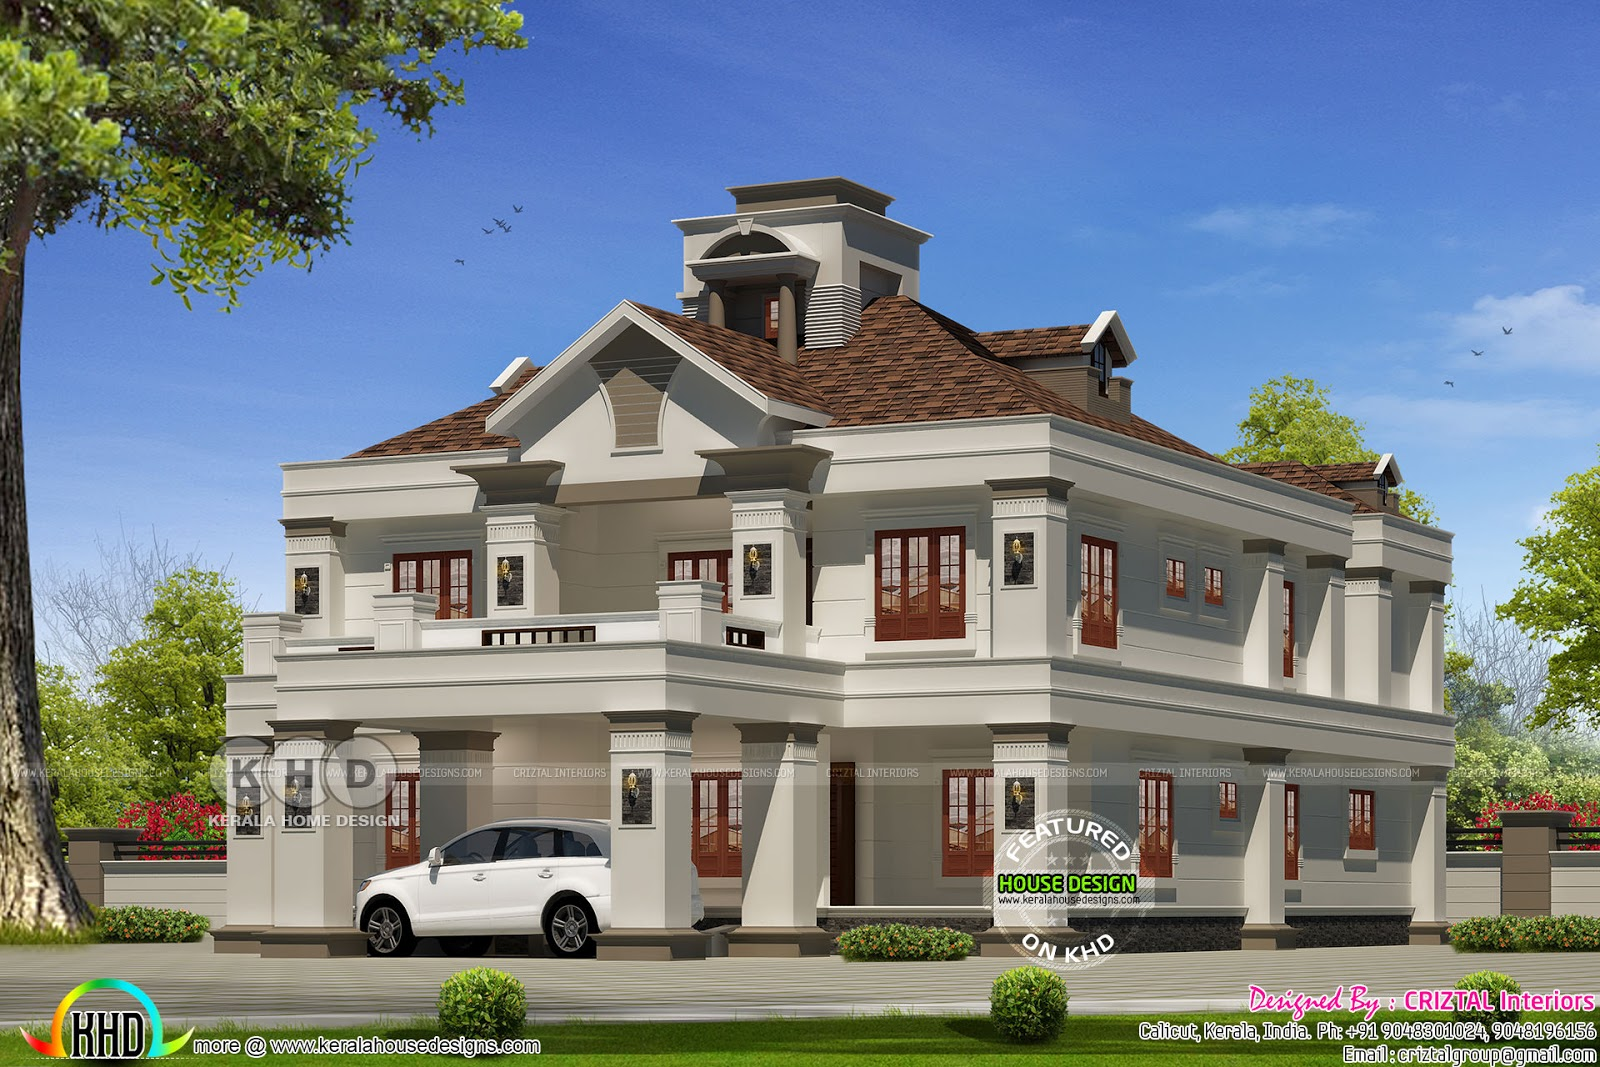 5 Bedroom Colonial Model Luxury House Kerala Home Design